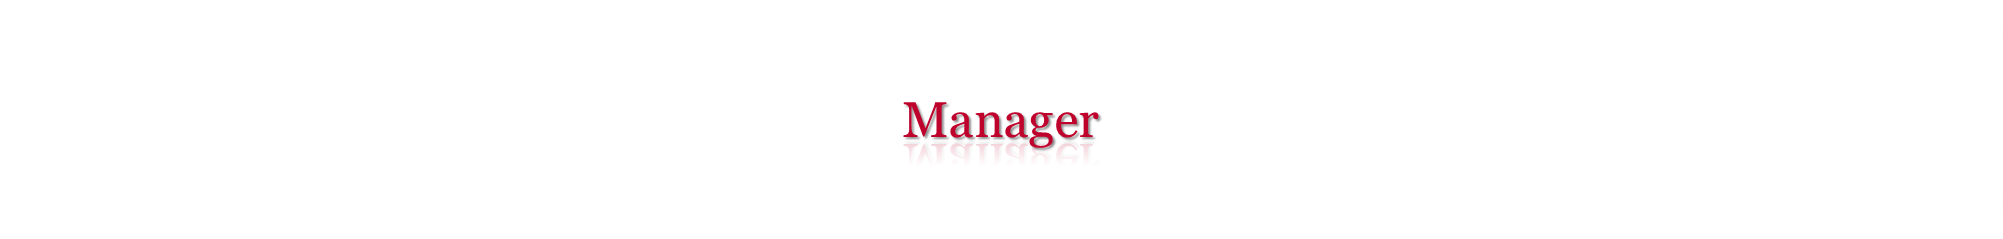 manager3